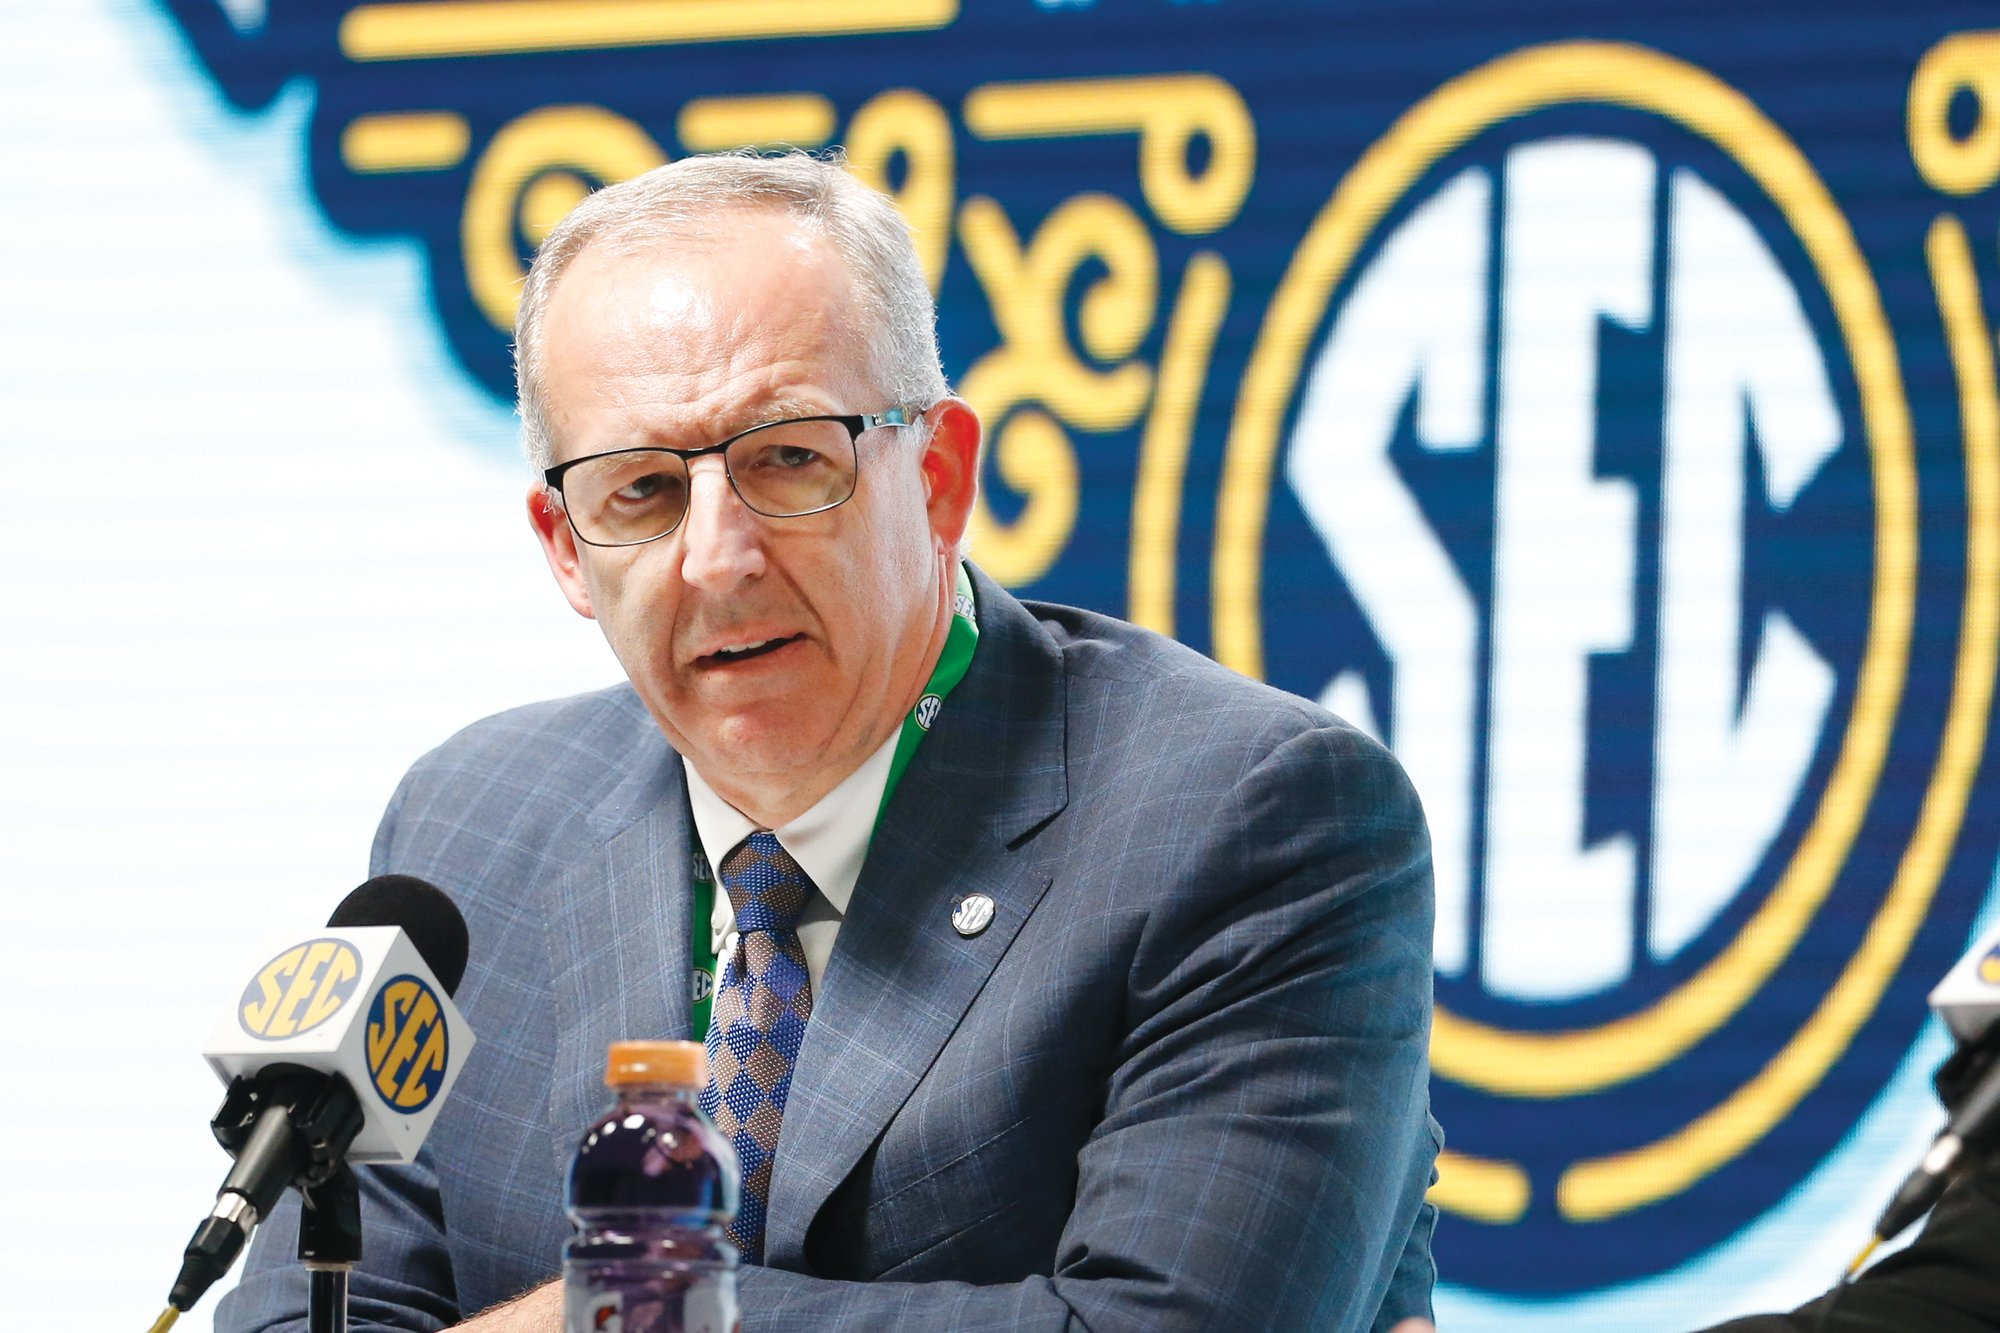 Southeastern Conference Commissioner Greg Sankey and other leaders in the conference met Wednesday to discuss plans for football in the fall.